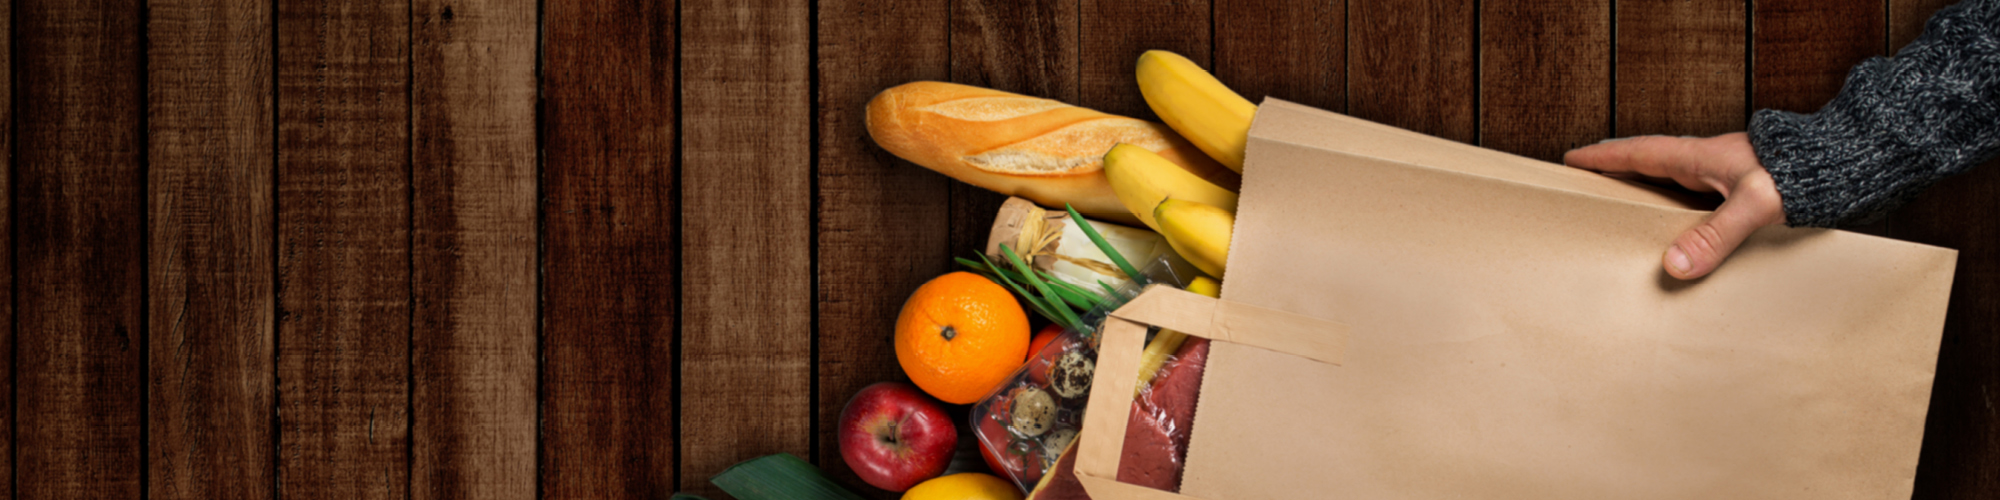 Grocery food items in paper bag on a wooded background